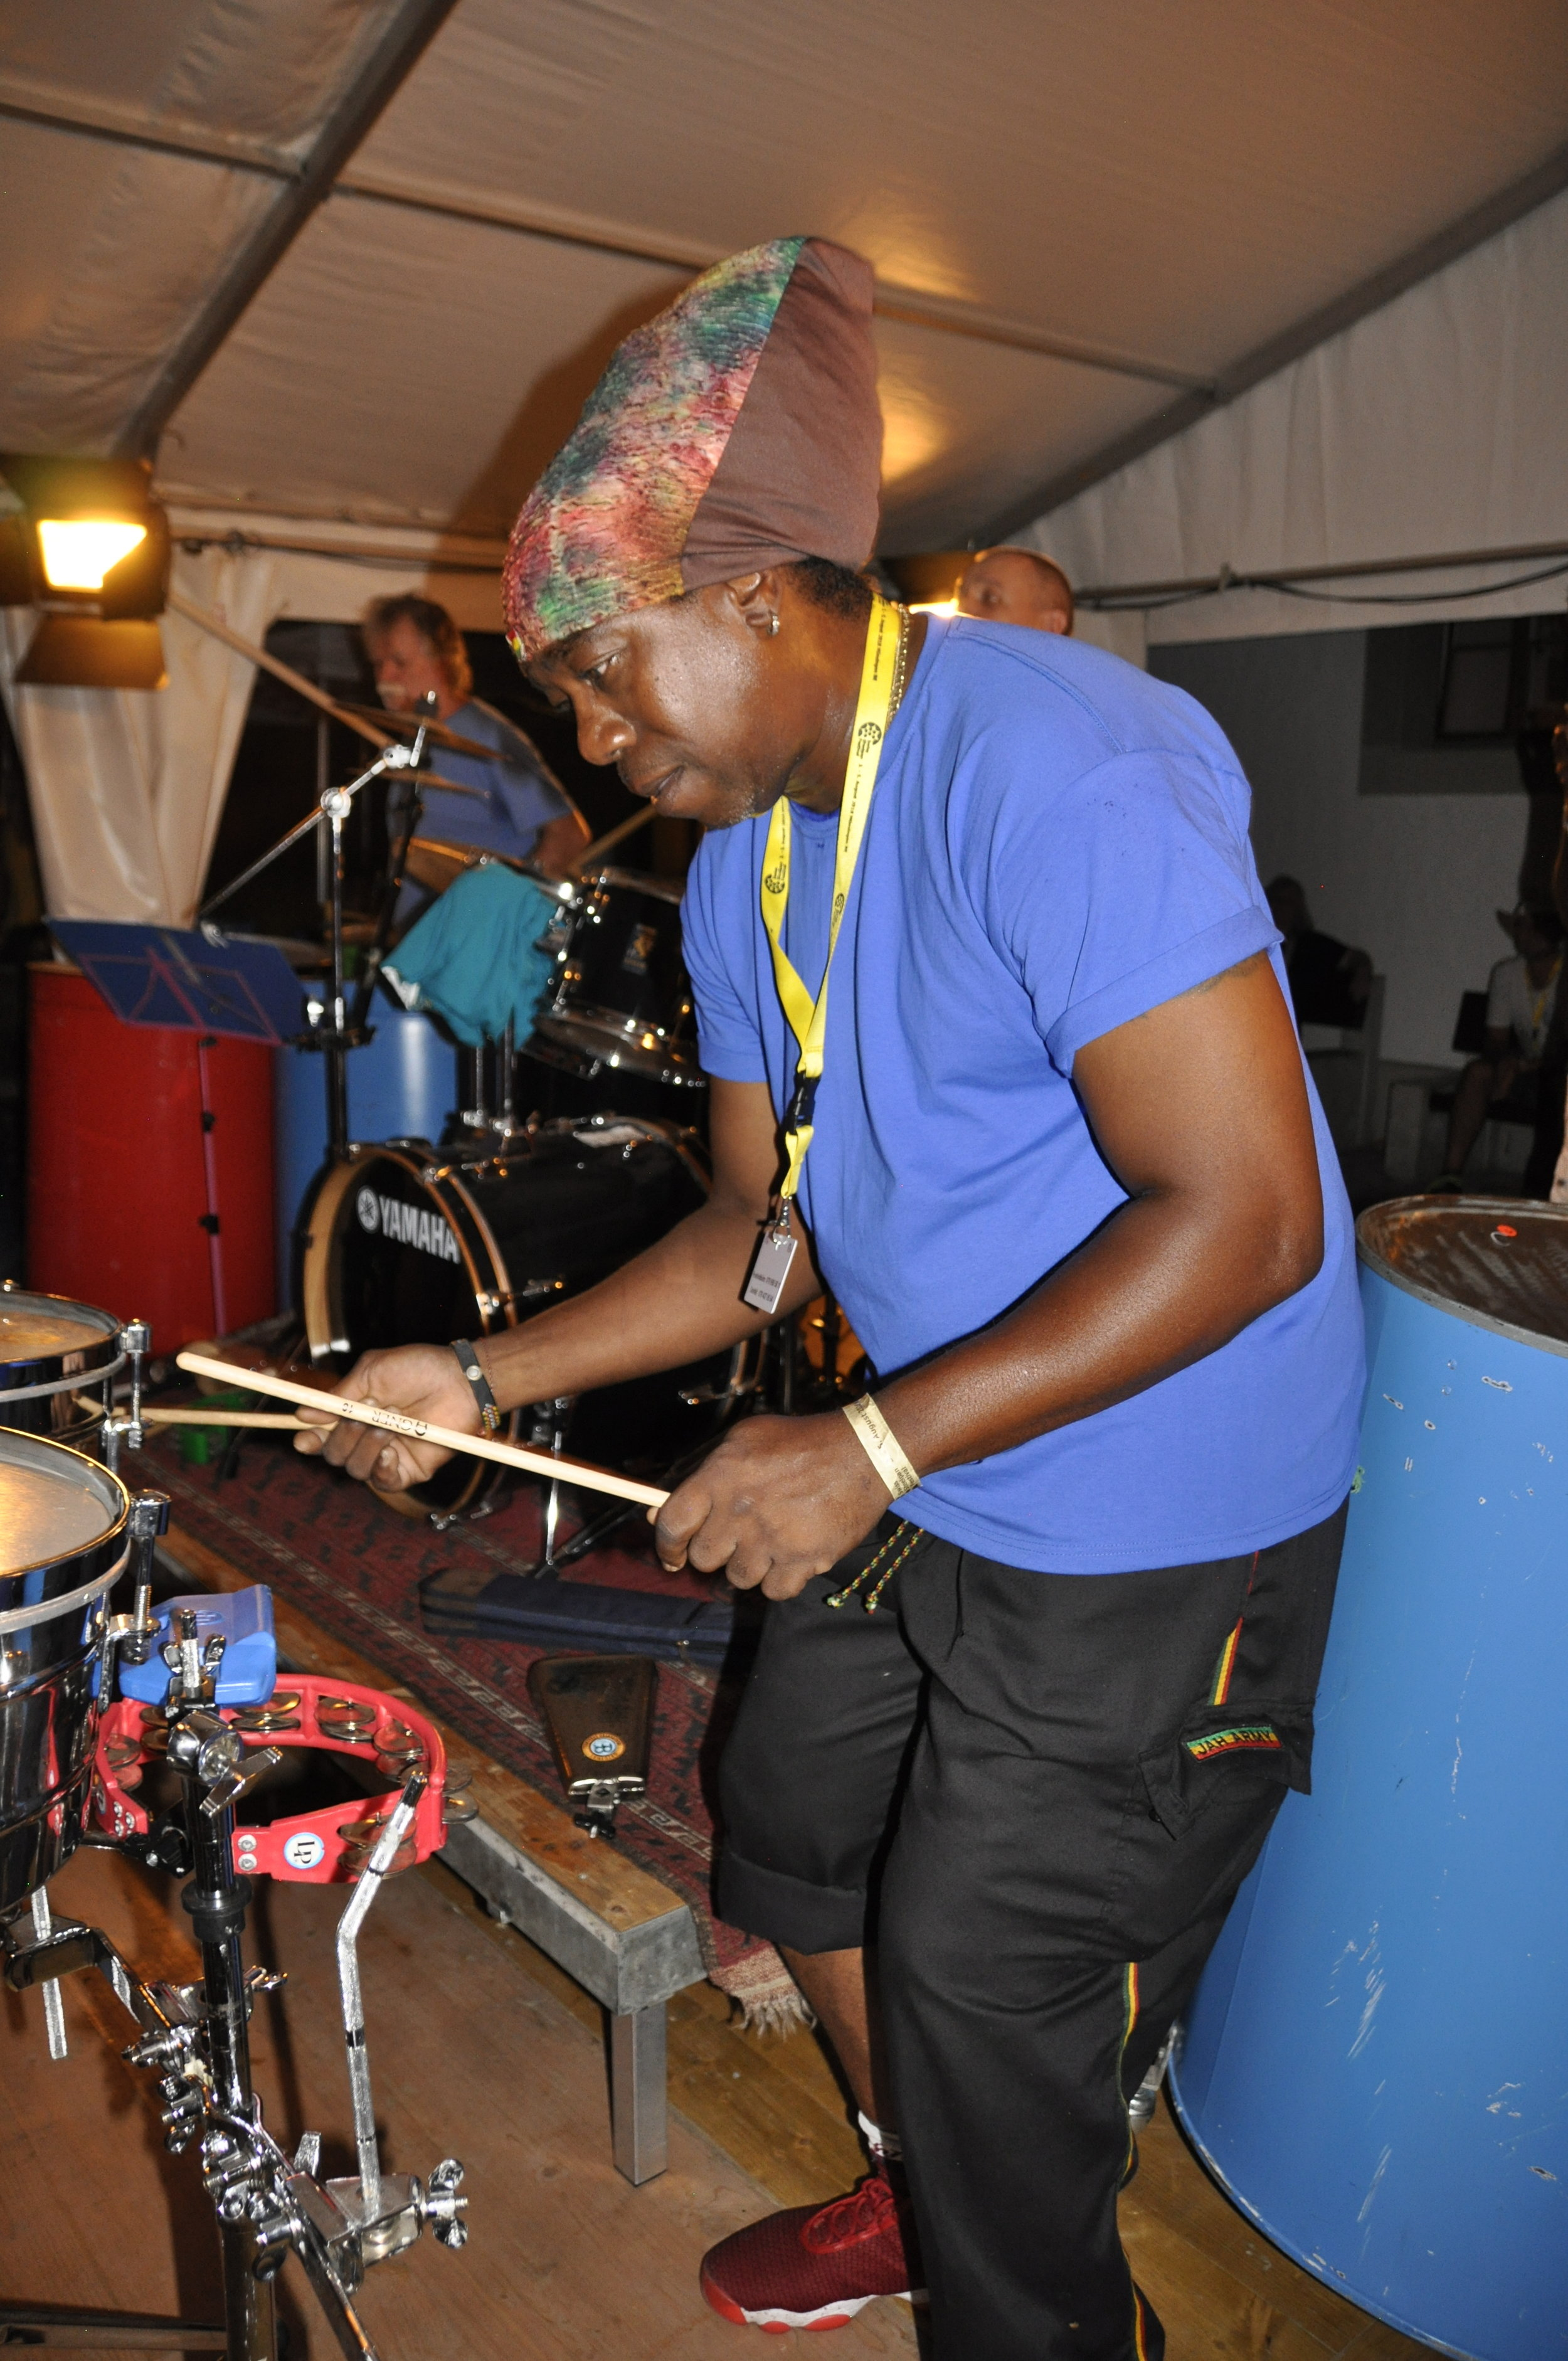 Junior playing at the Swiss Steelband Festival in Bern 2018